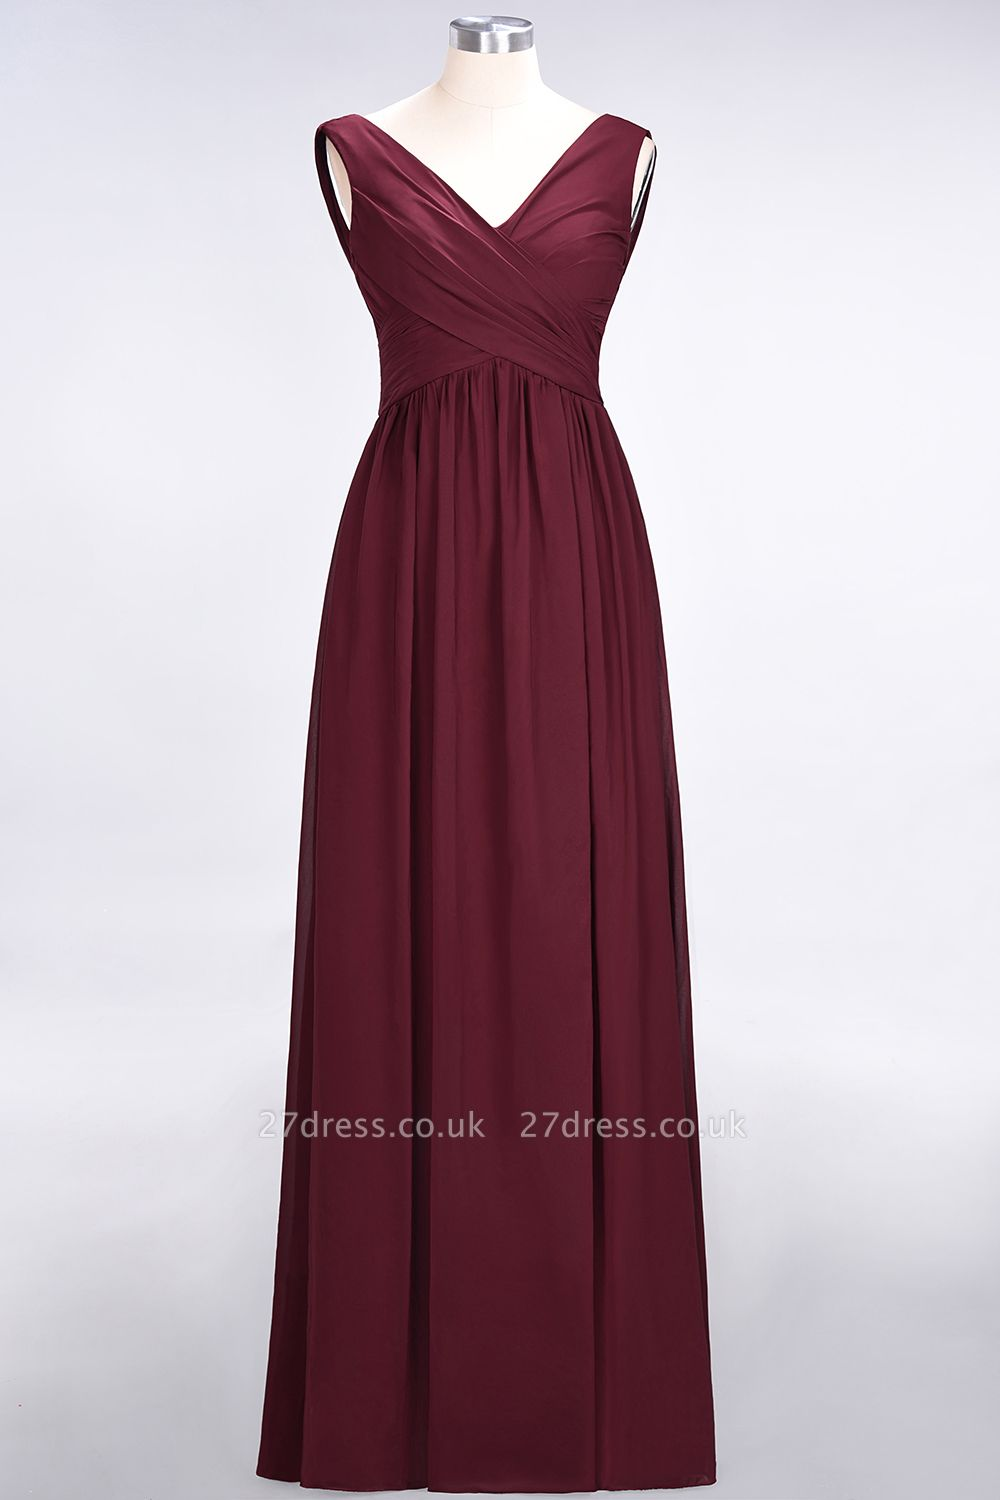 Sexy A-line Flowy Straps Alluring V-neck Sleeveless Floor-Length Bridesmaid Dress UK UK with Ruffles